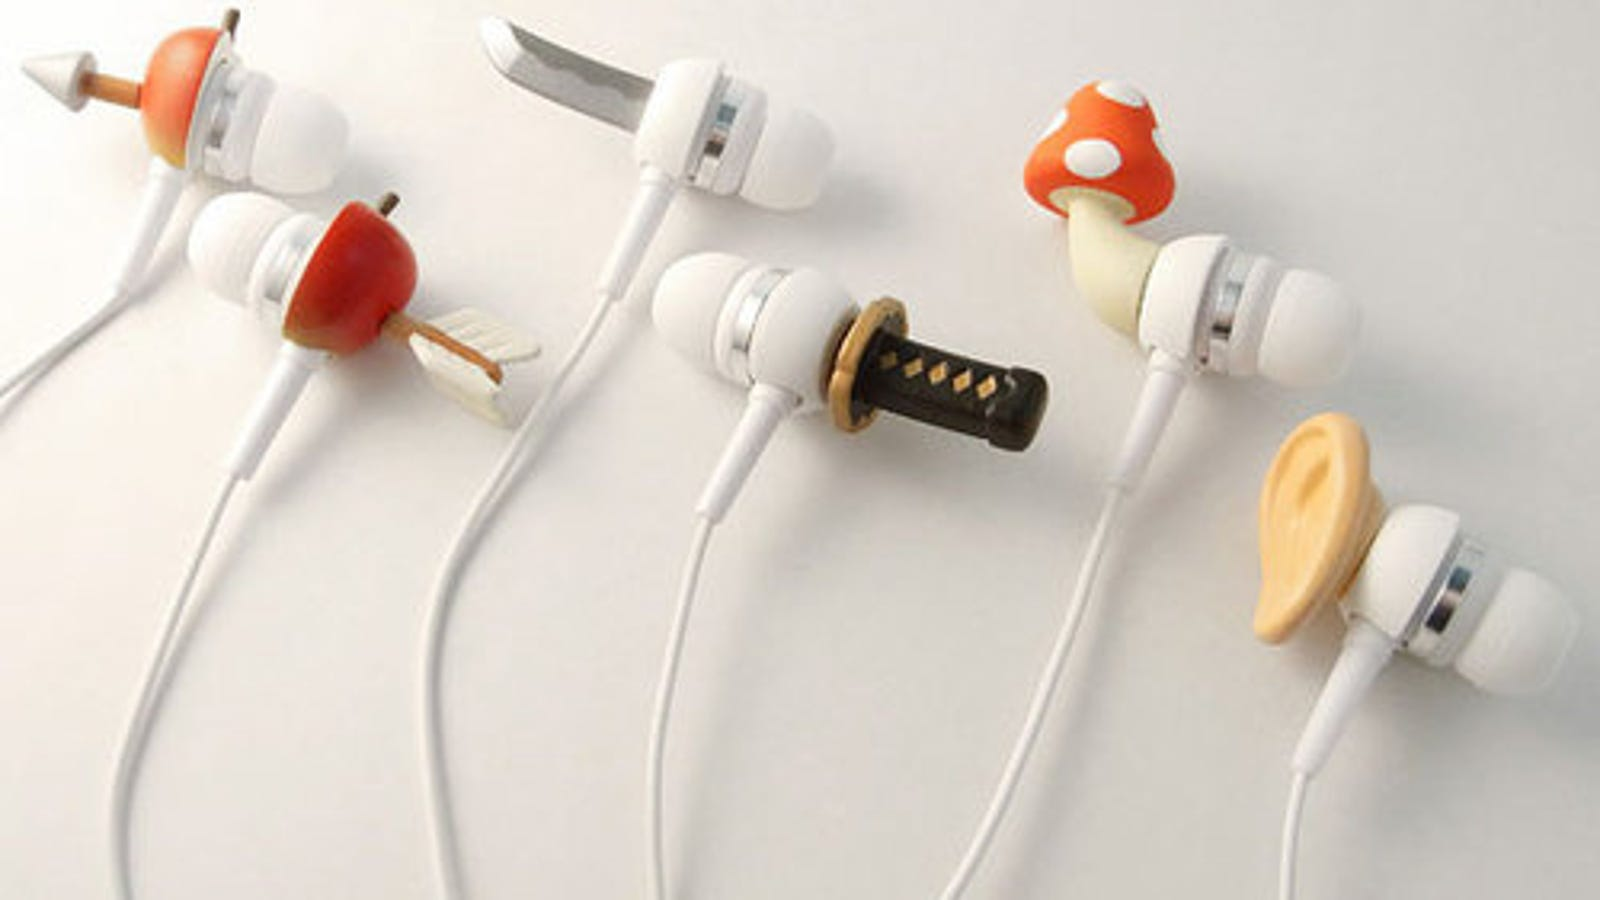 beats wireless headphones overear - Katana Earbuds Show the World How I Feel When I Listen to LFO